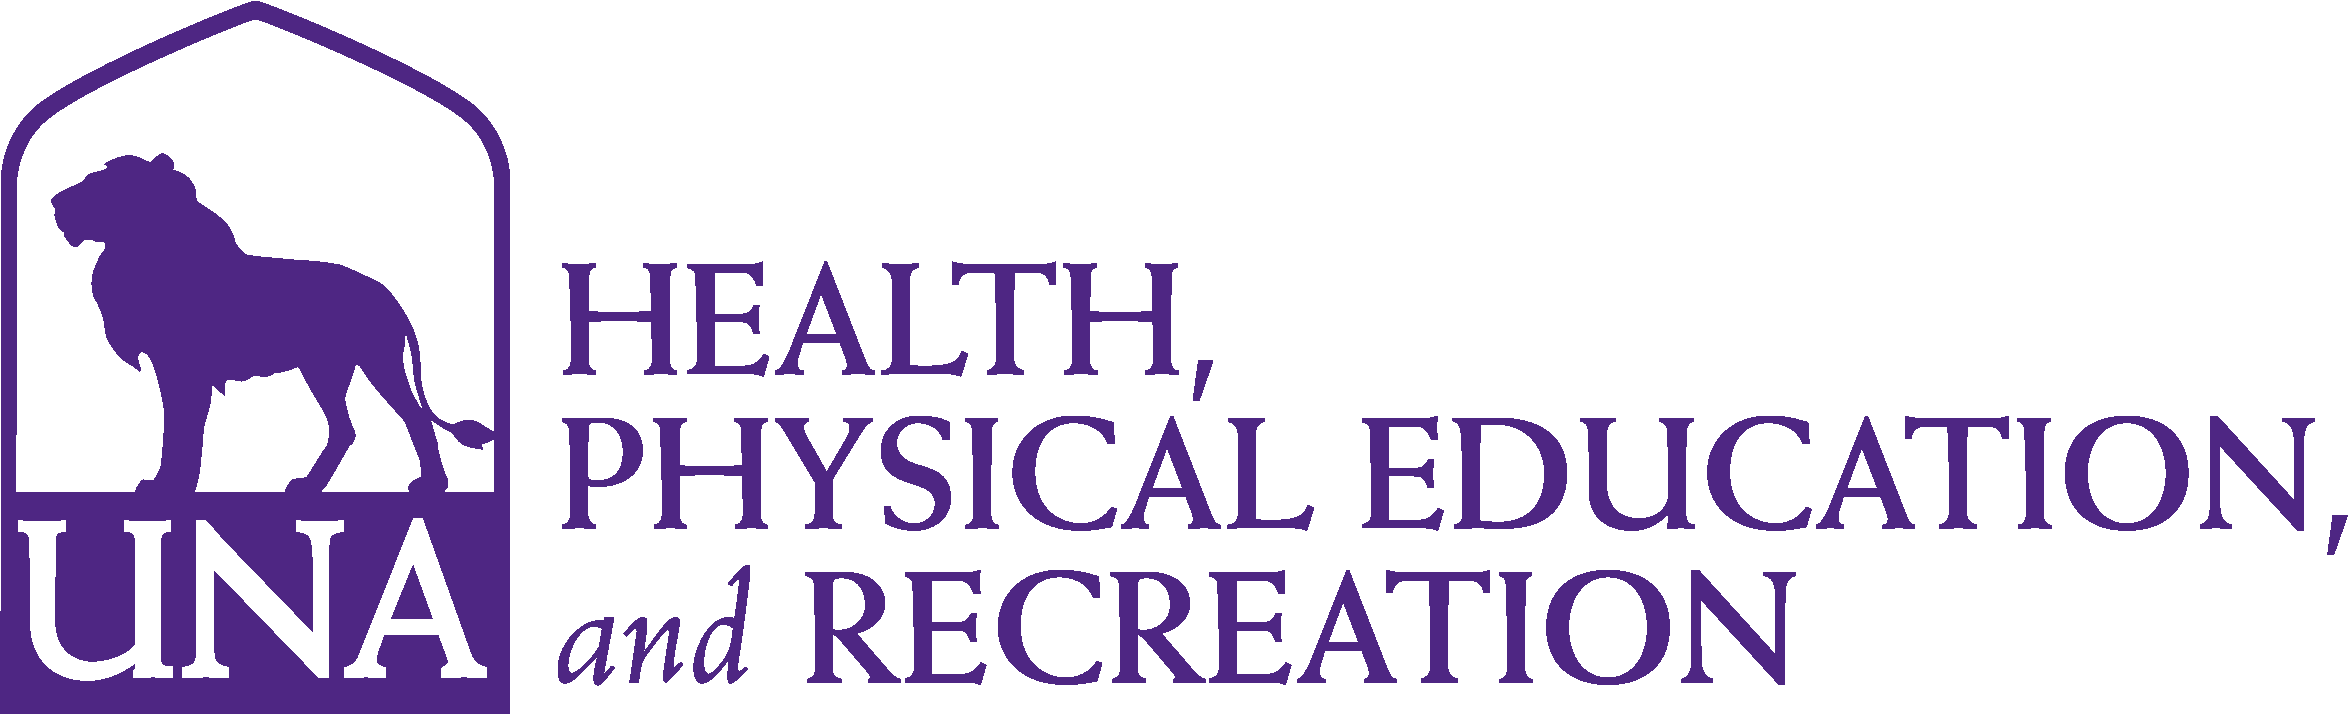 College of Education and Human Services - Health Physical Education & Recreation Logo - Purple - Version 3